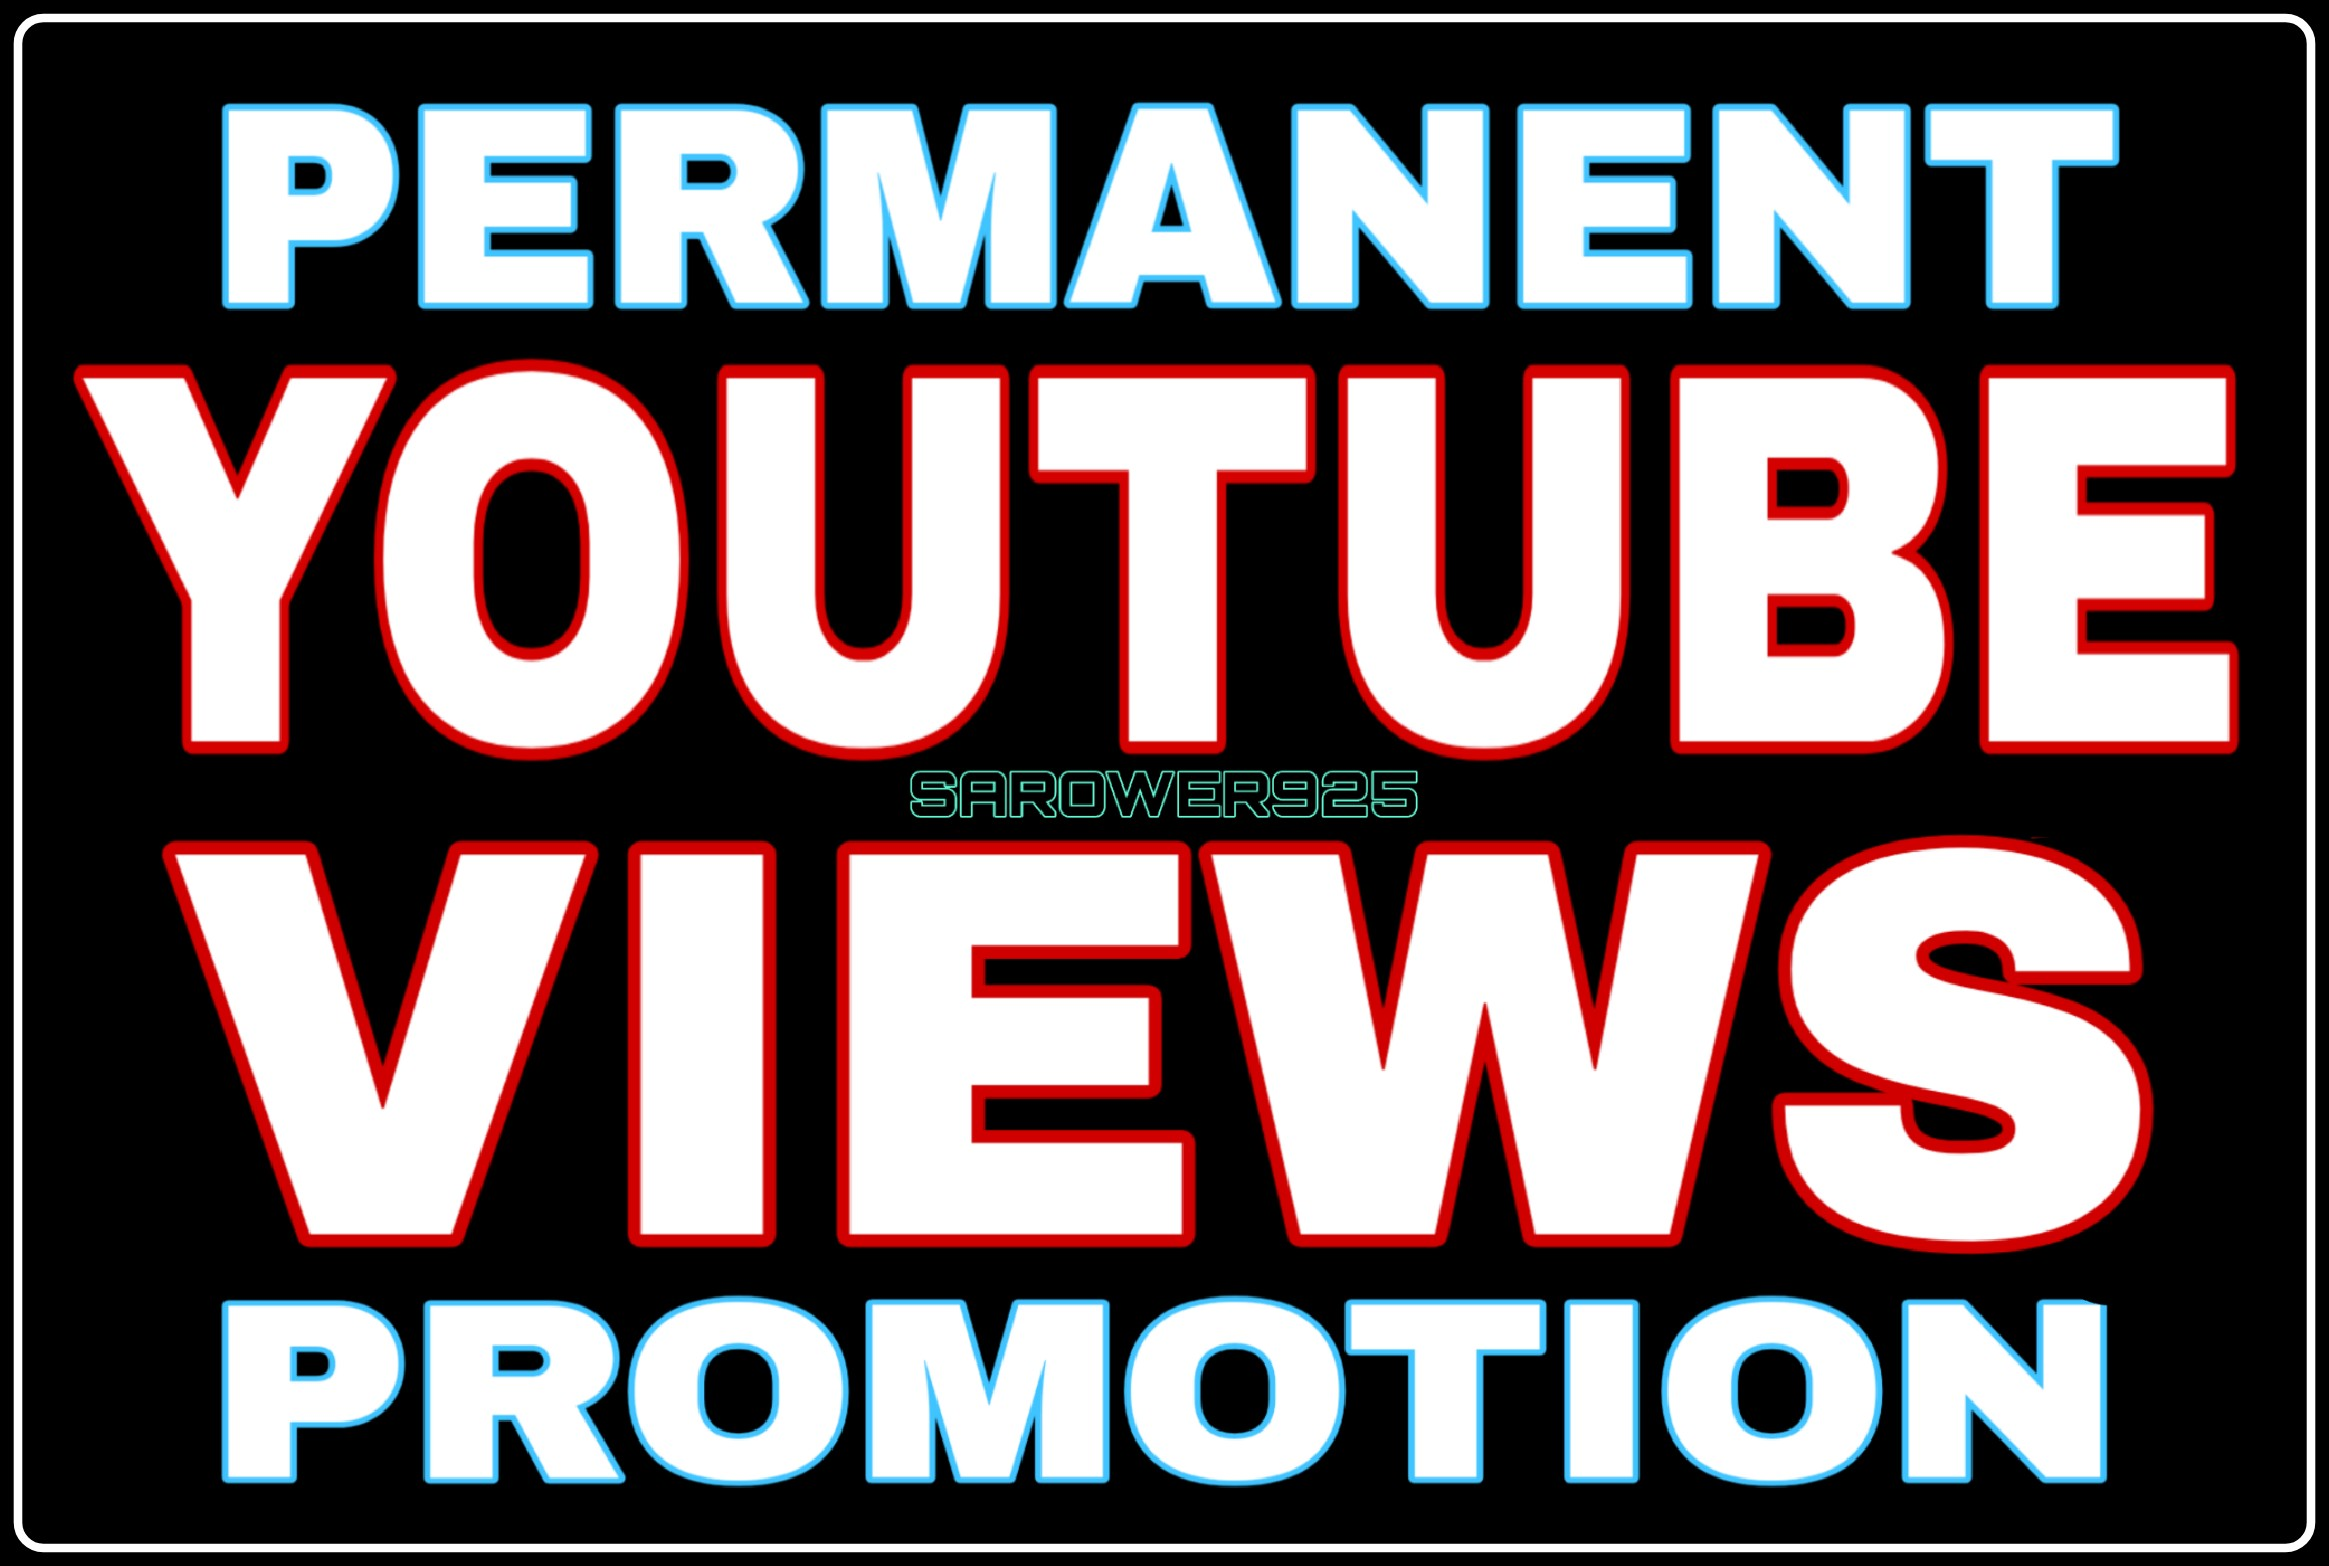 High Quality Non-drop youtube video promotion very fast